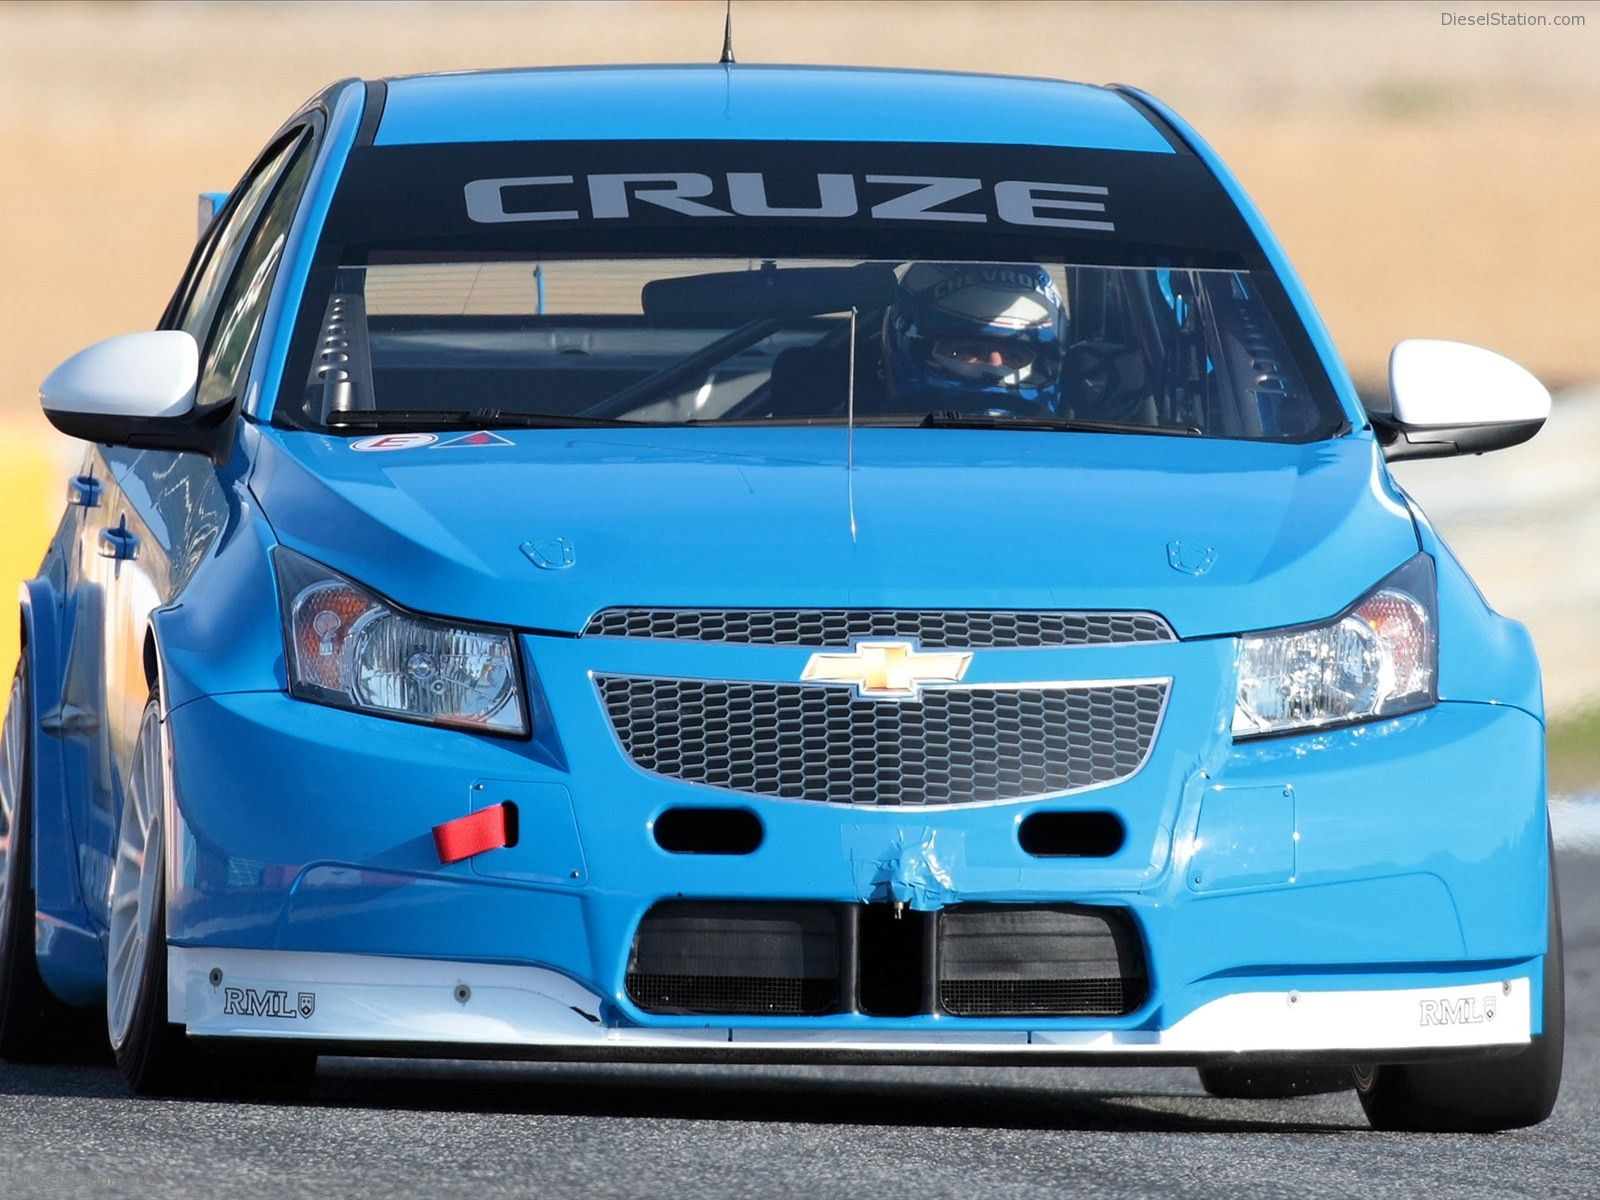 2006 Chevrolet WTCC Ultra Concept - List of Chevrolet vehicles ...